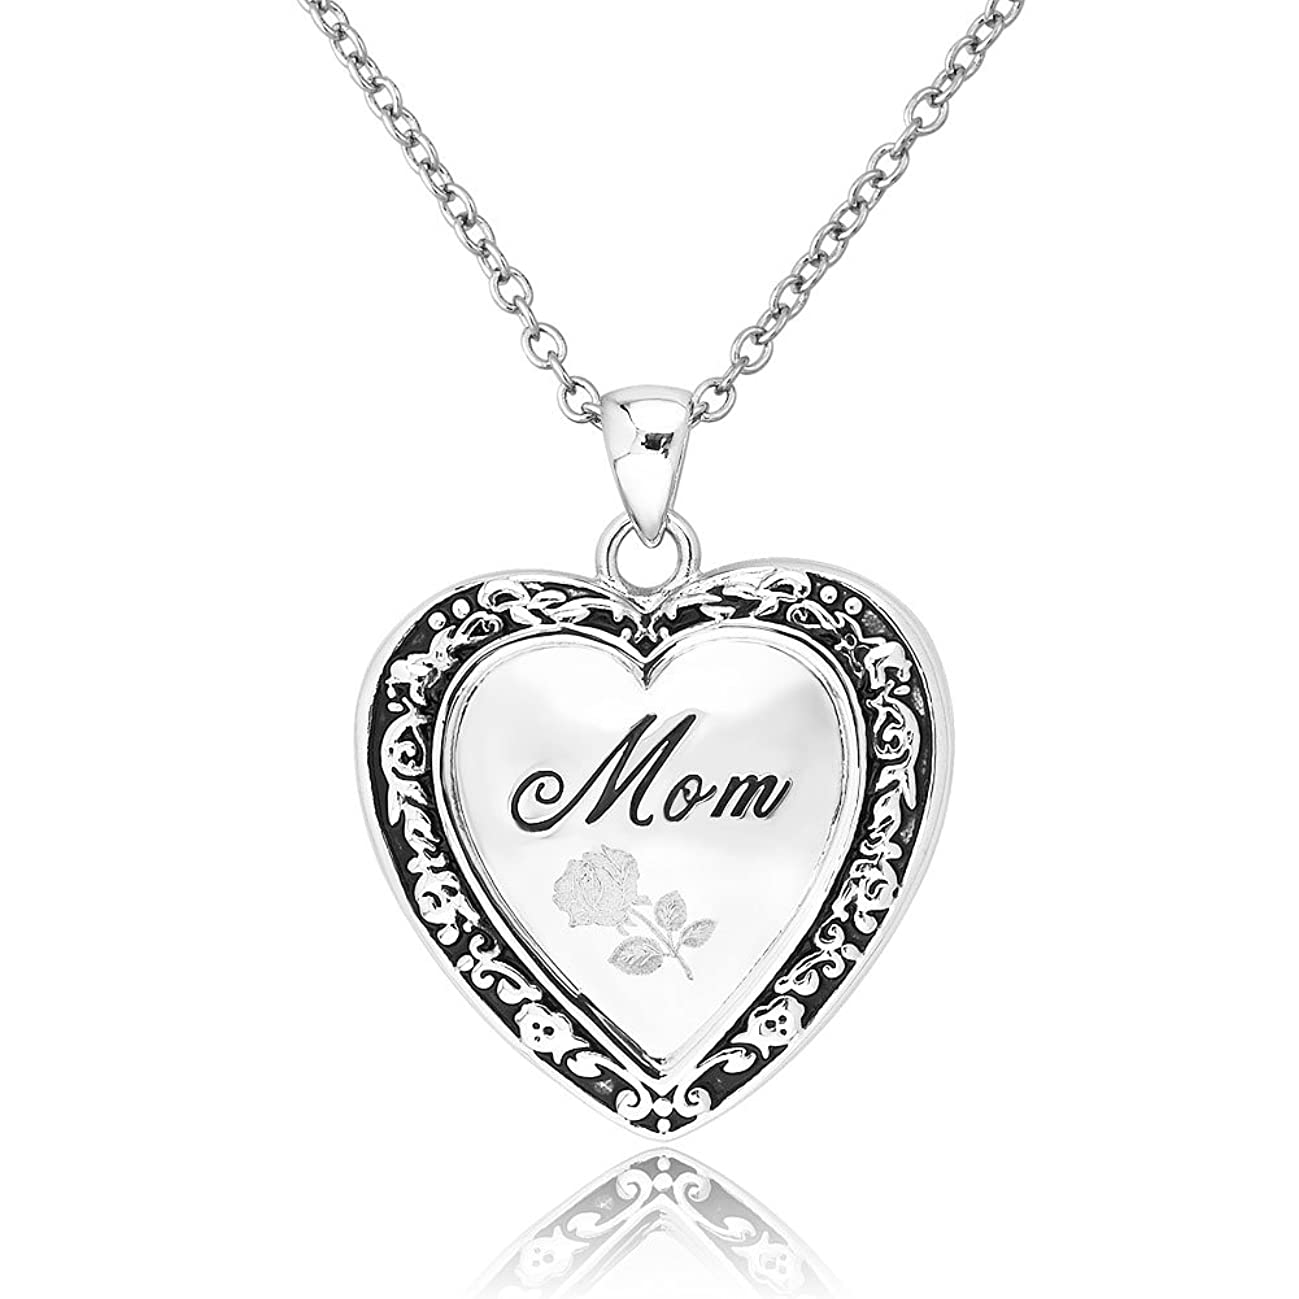 Mother's Day Gift Engraved Rose Flower I Love You Mom Heart Locket Pendant Necklace Chain 18